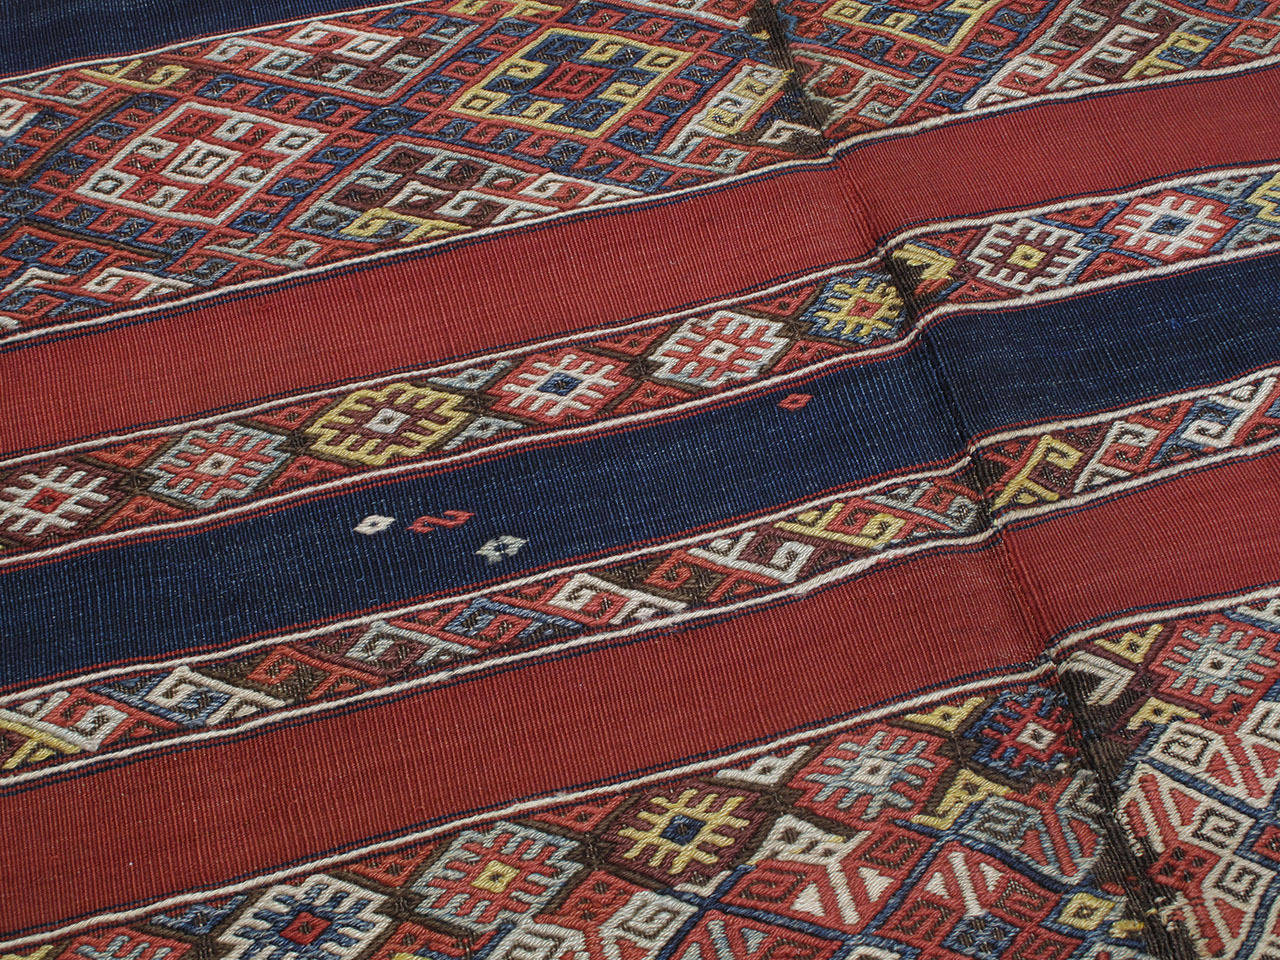 Antique Malatya Kilim Rug In Good Condition For Sale In New York, NY